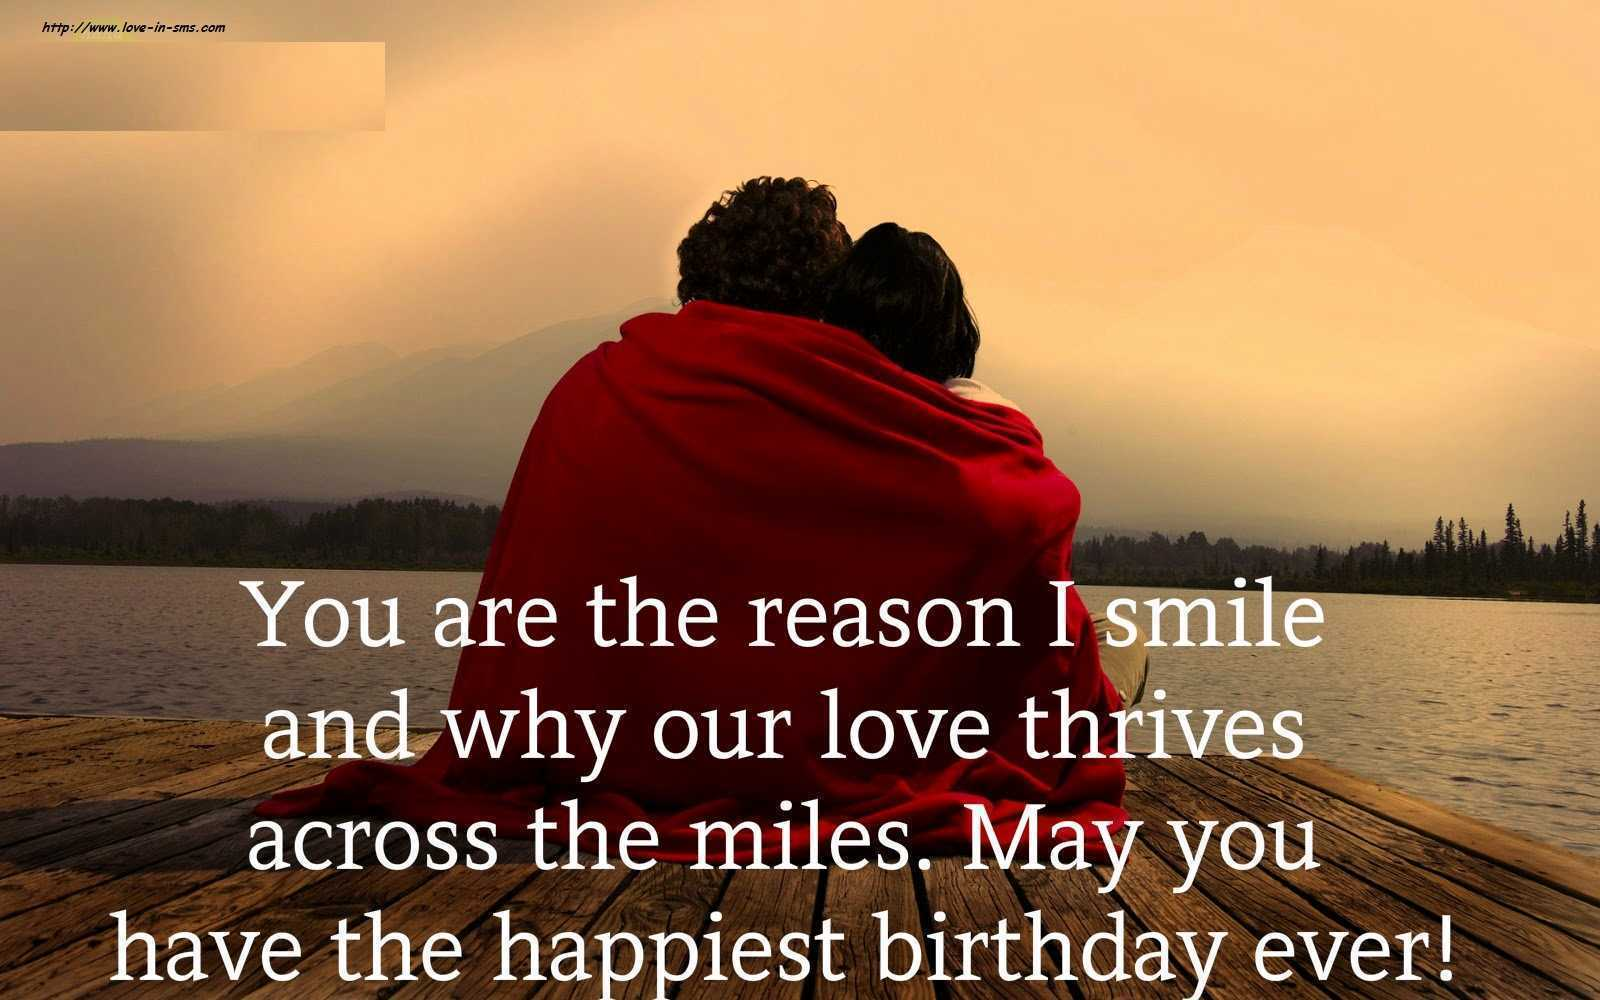 happy birthday my love quotes for him ; birthday-love-quotes-for-him-unique-happy-birthday-wishes-to-my-love-of-birthday-love-quotes-for-him